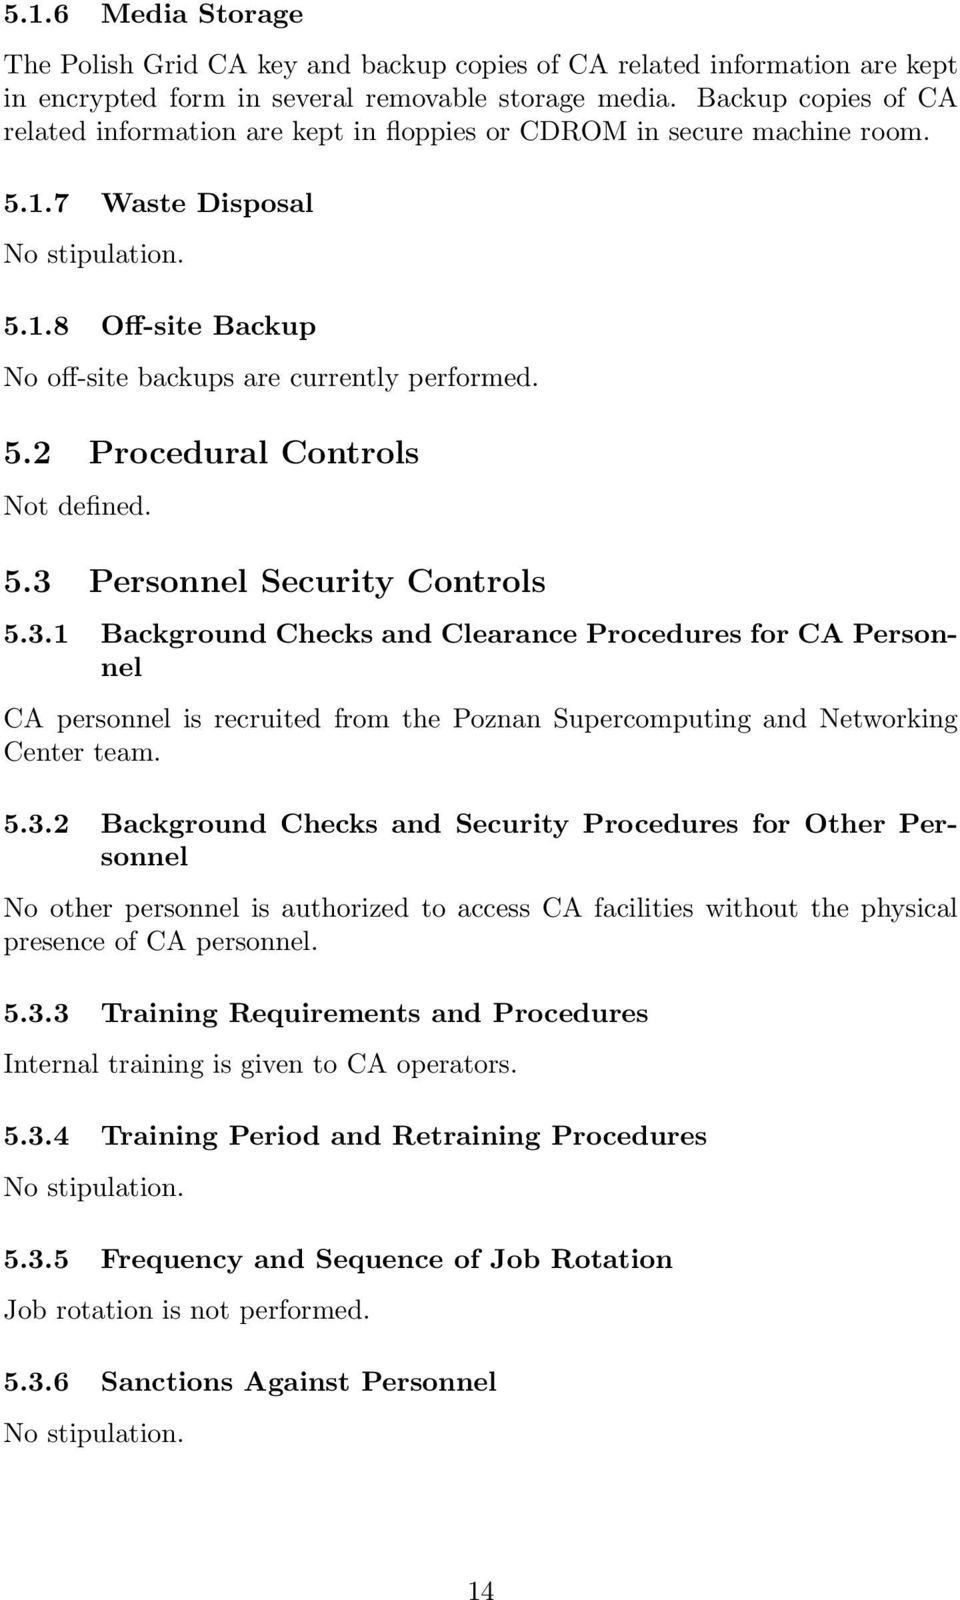 5.3 Personnel Security Controls 5.3.1 Background Checks and Clearance Procedures for CA Personnel CA personnel is recruited from the Poznan Supercomputing and Networking Center team. 5.3.2 Background Checks and Security Procedures for Other Personnel No other personnel is authorized to access CA facilities without the physical presence of CA personnel.